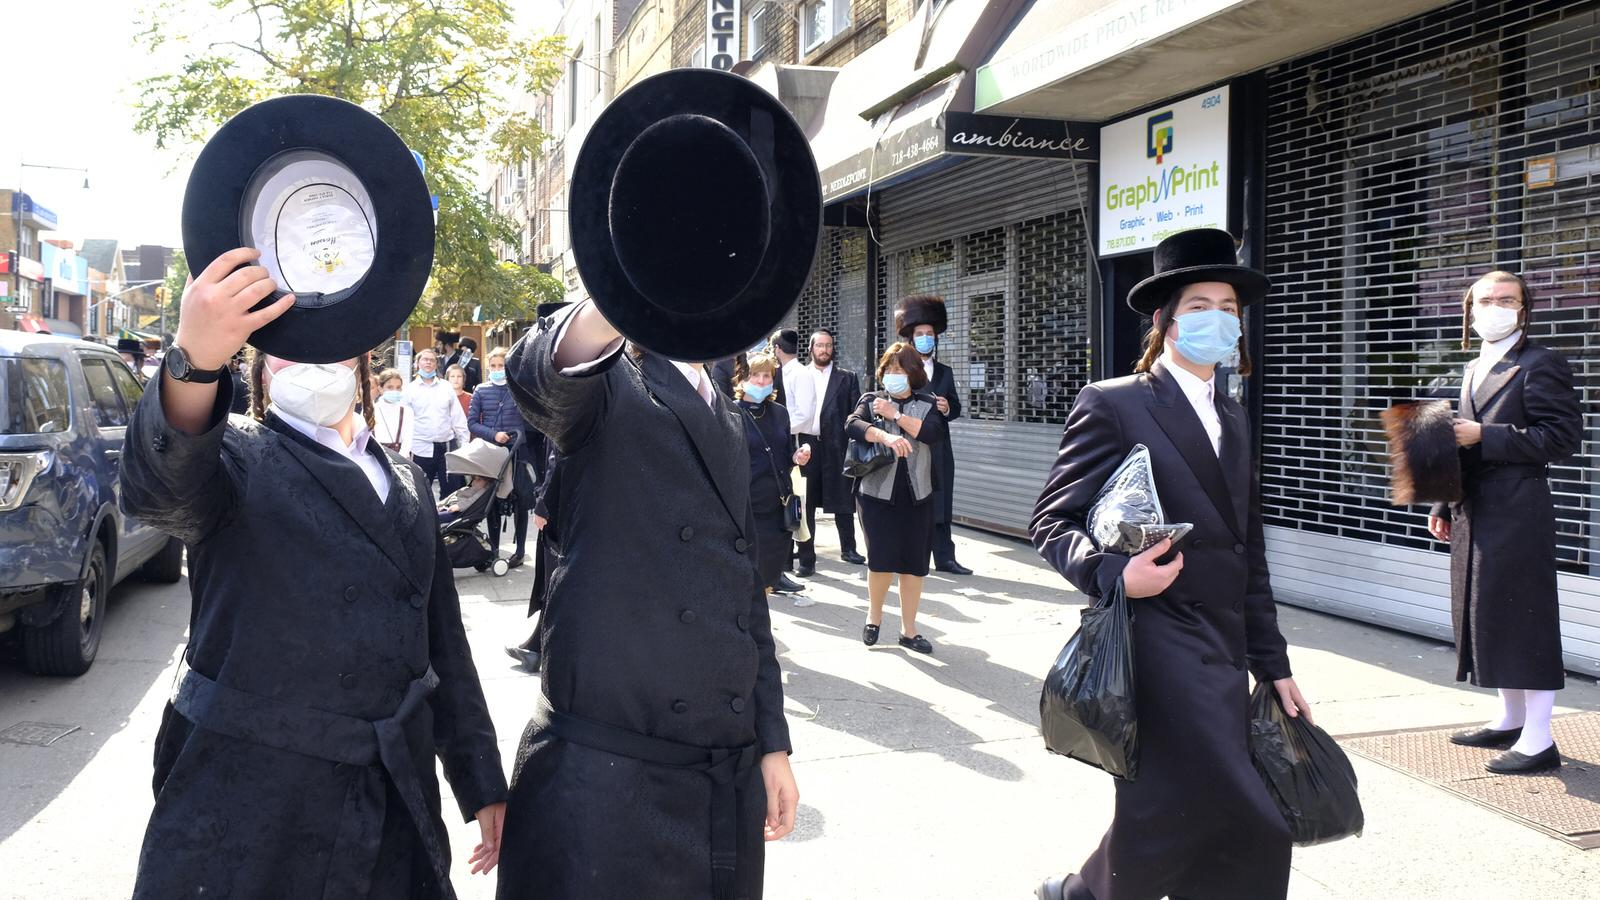 Brooklyn - October 7, 2020 - A group of Orthodox Jewish teenagers some wearing facial mask tries to block this photographer from taking pictures on 13th Avenue near 49th Street in the Borough Park section of Brooklyn Wednesday afternoon. NYPD 66th Precinct Officers showed at the scene but did not ticket or warned the mask less members of the crowd. New Yorkers who hold mass gatherings will be fined up to $15,000 per day, Mayor de Blasio announced Wednesday, the latest step aimed at cracking down on an alarming spike in COVID cases in parts of Brooklyn and Queens. (Luiz C. Ribeiro for New York Daily News)